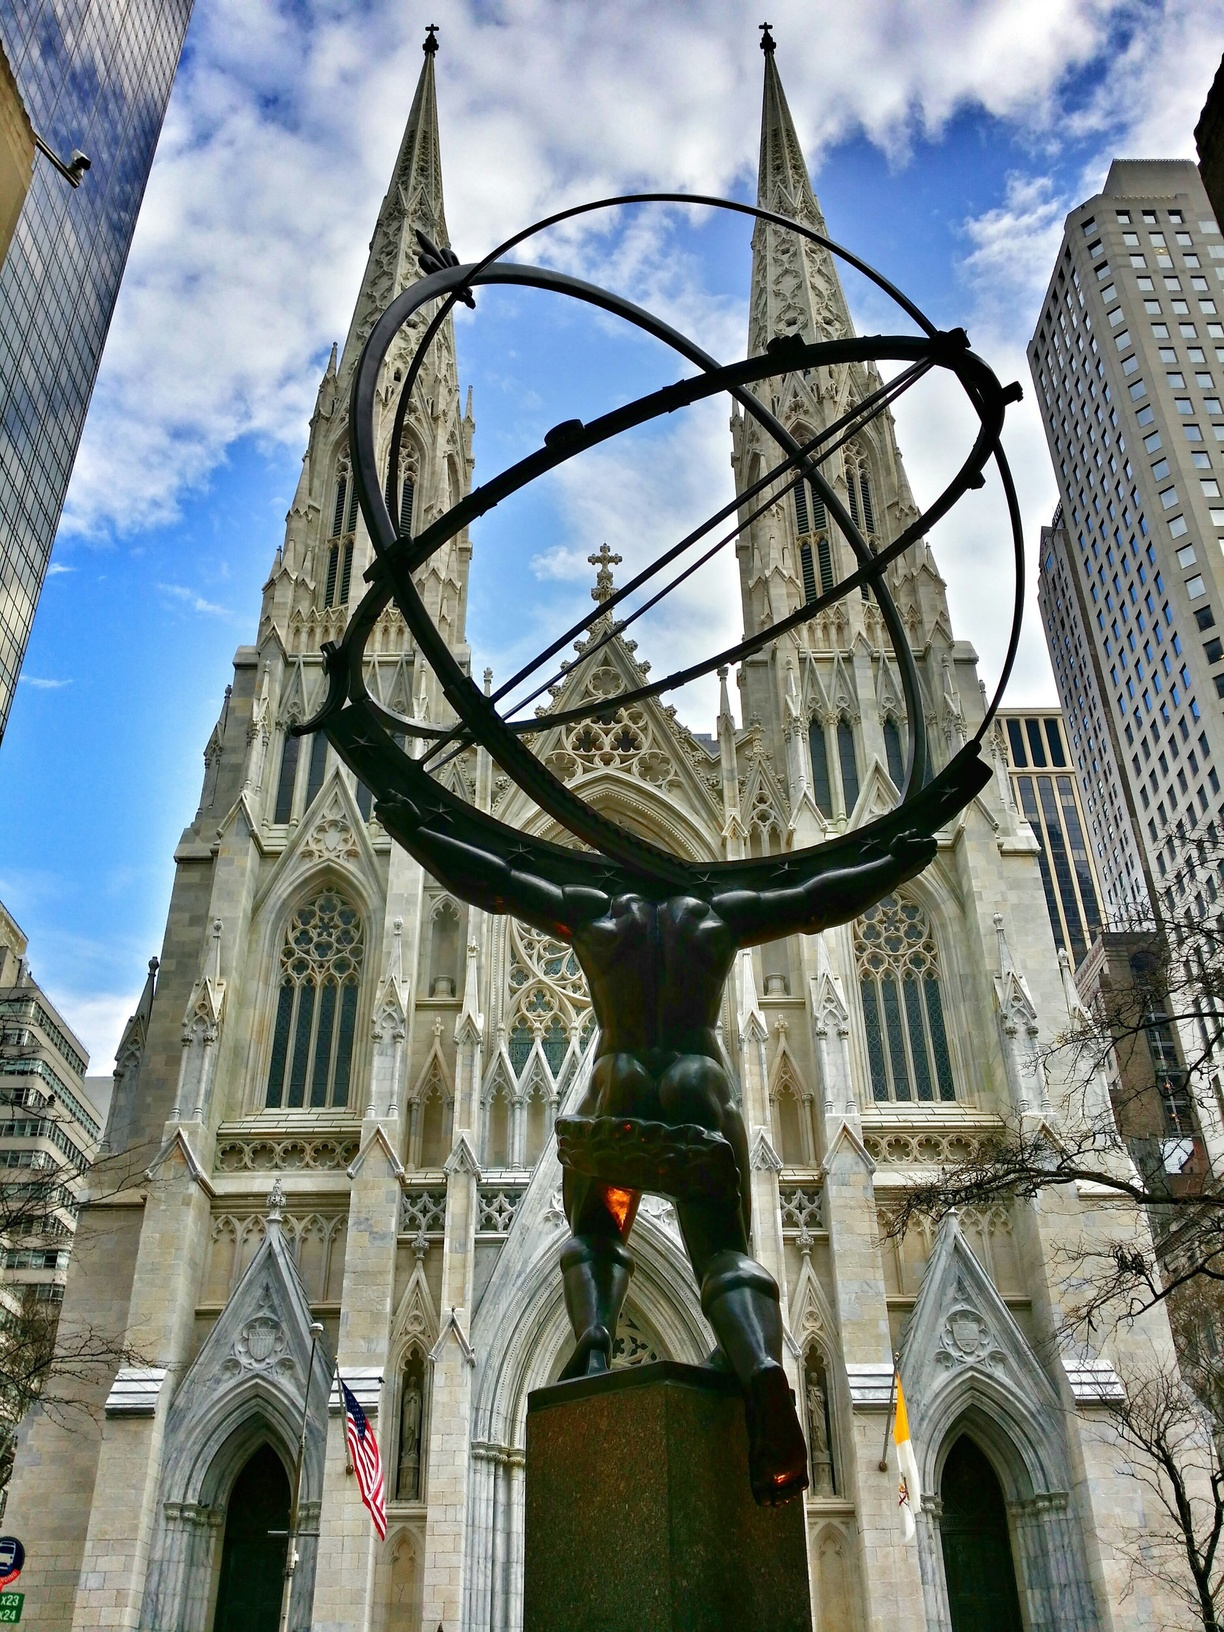 St. Patrick's Old Cathedral New York City, New York City for St Patricks Cathedral — Jrrny